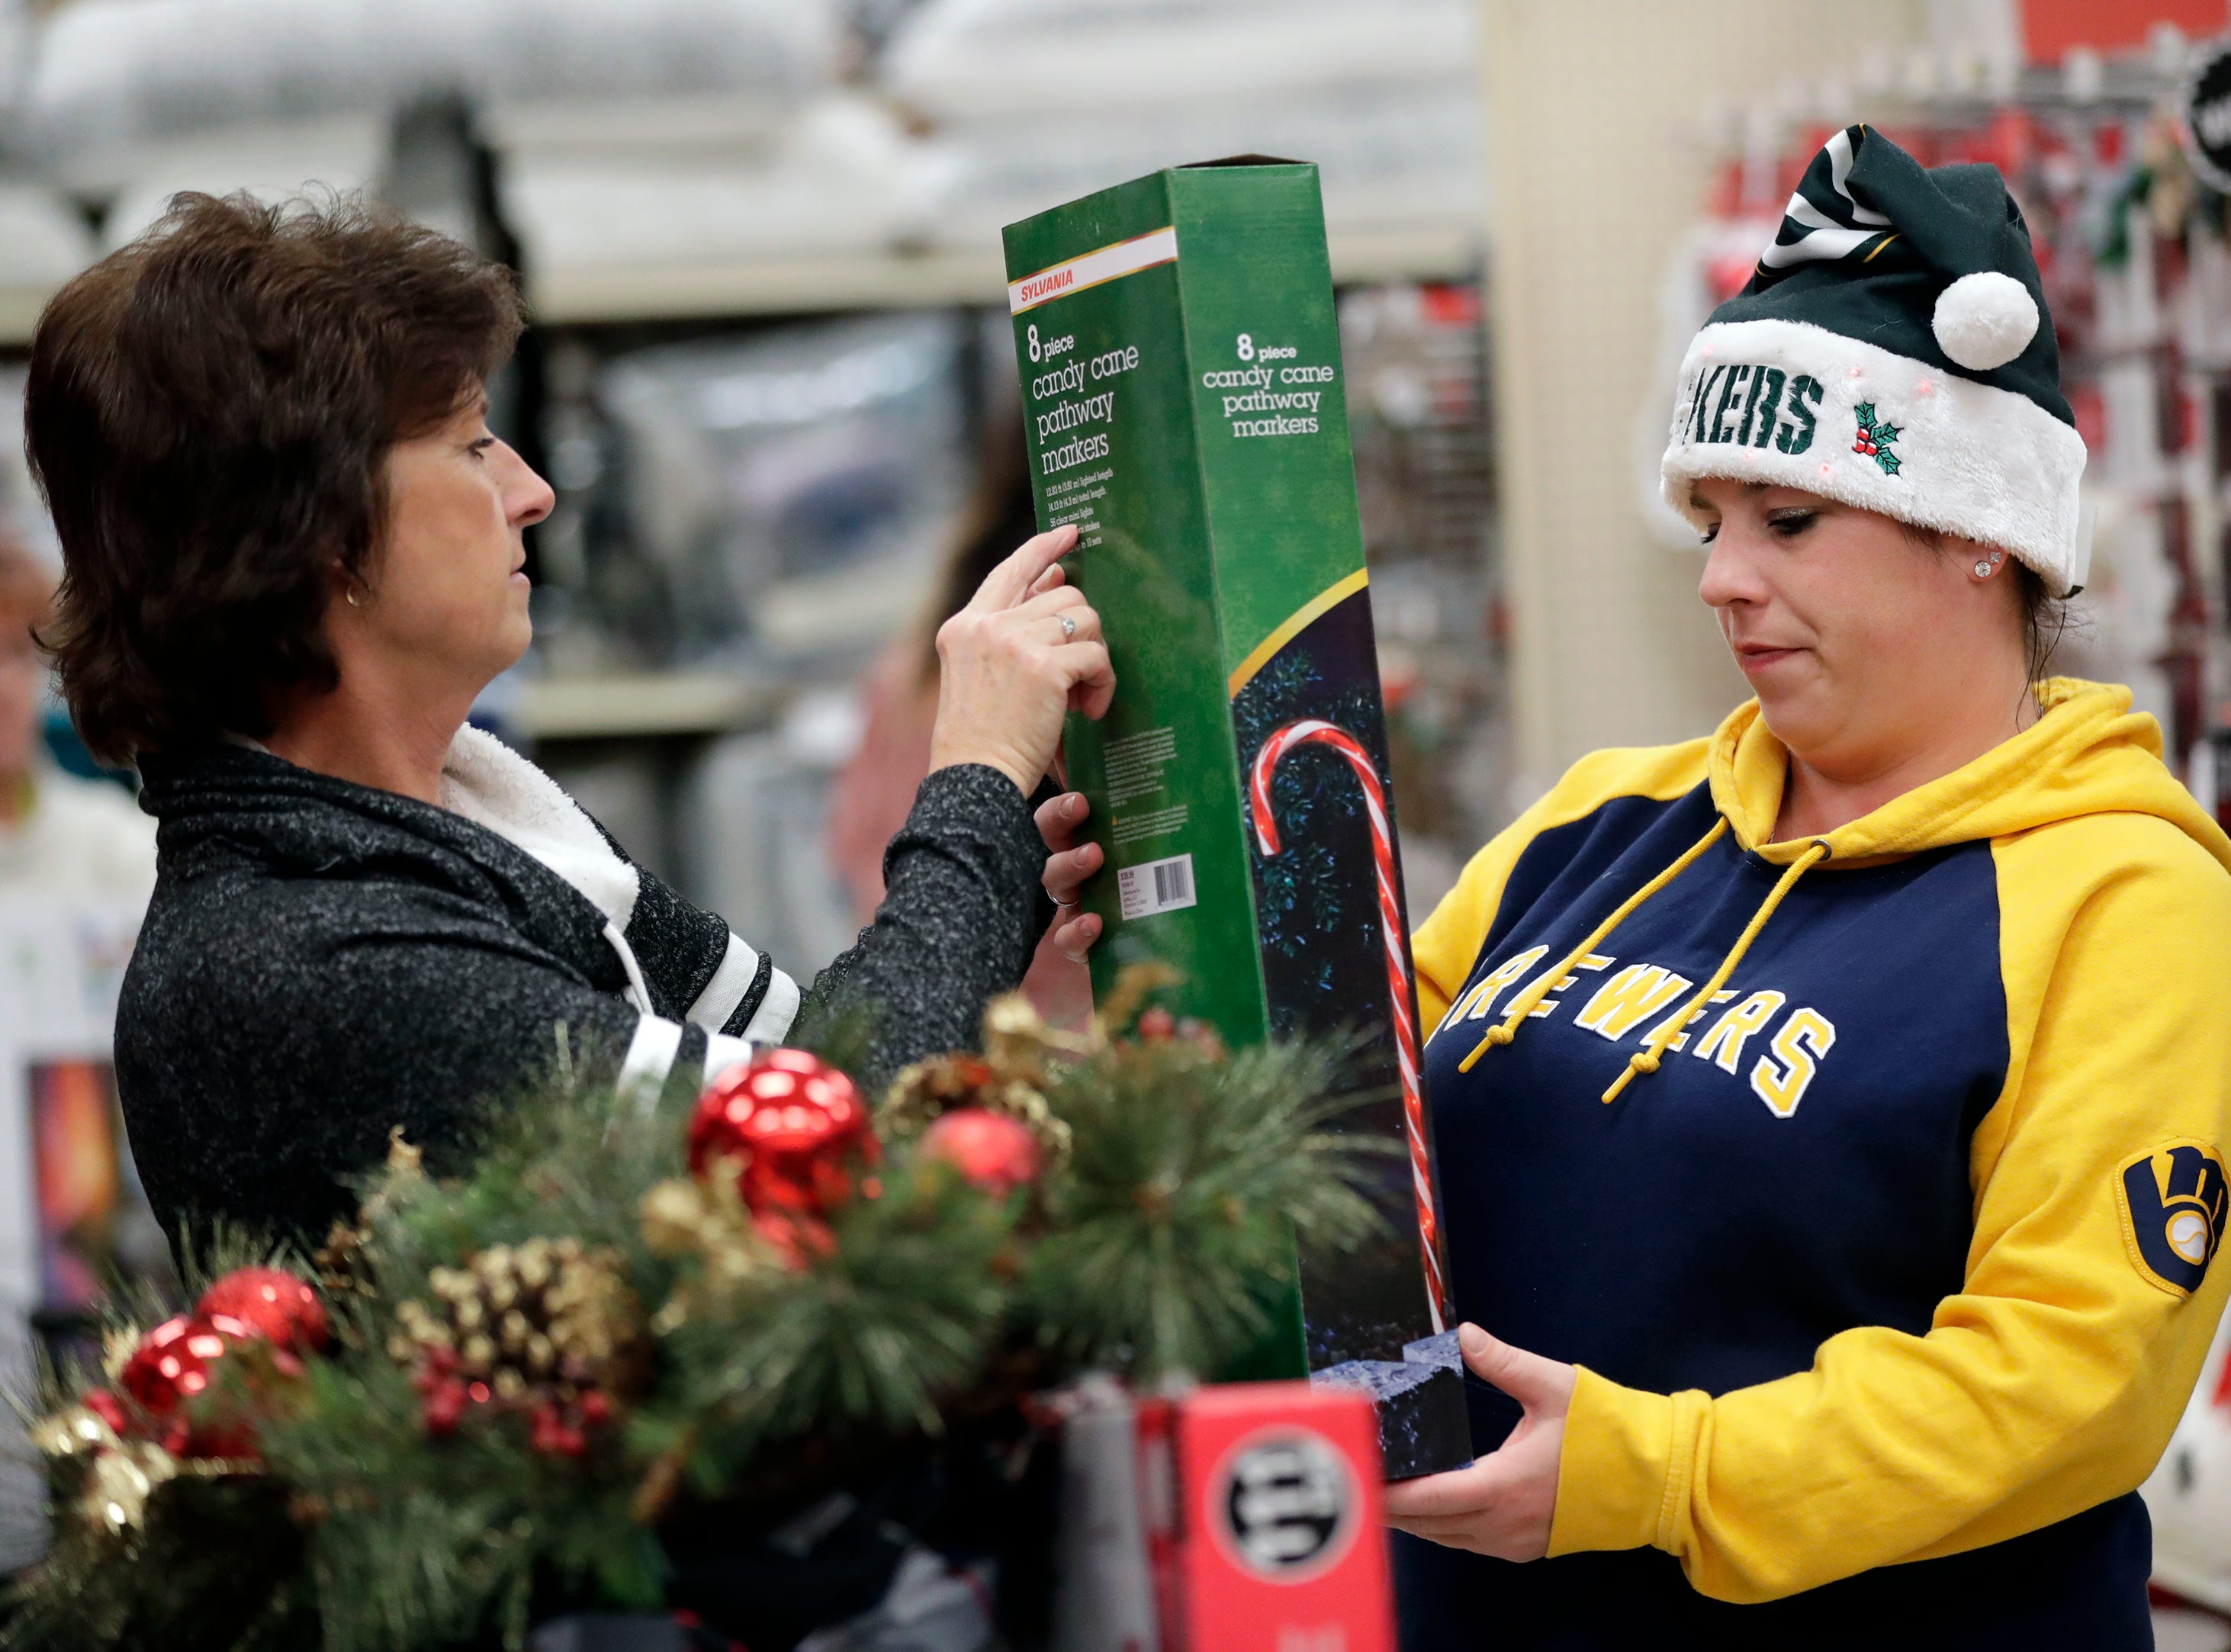 Jeanine Brown, left, of Hortonville and her daughter Pamela Brown of Appleton shop for candy cane pathway markers while looking for Black Friday specials Thursday, November 22, 2018, at Shopko in Appleton, Wis. 